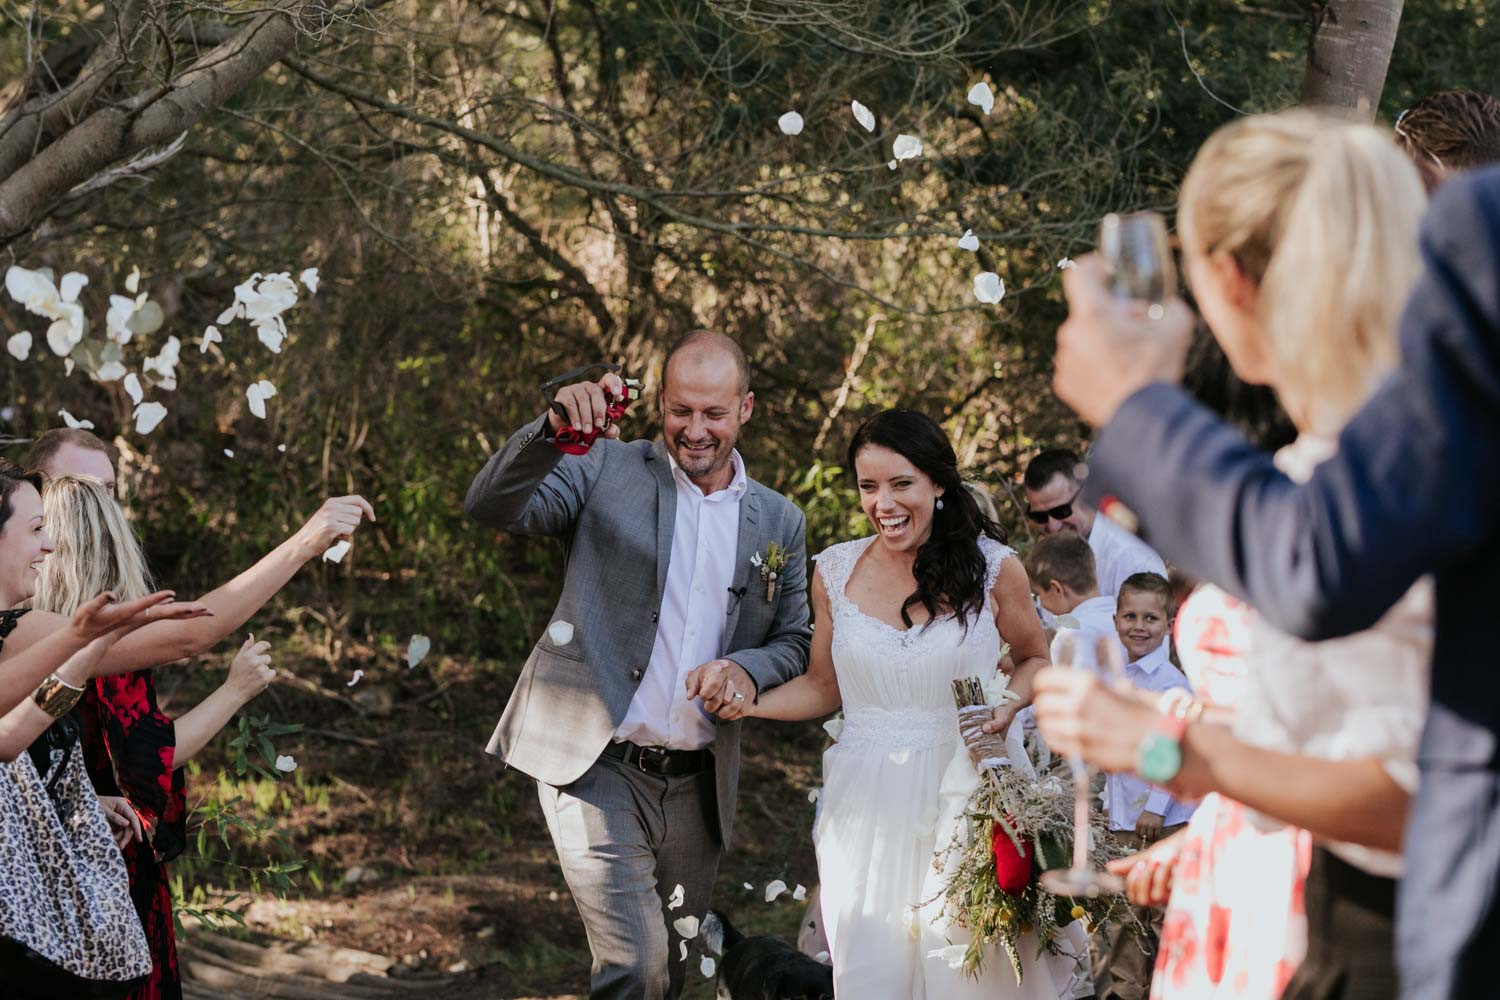 Guests throw rose confetti on husband and wife as they walk down a dusty farm road in Western Cape, South Africa.